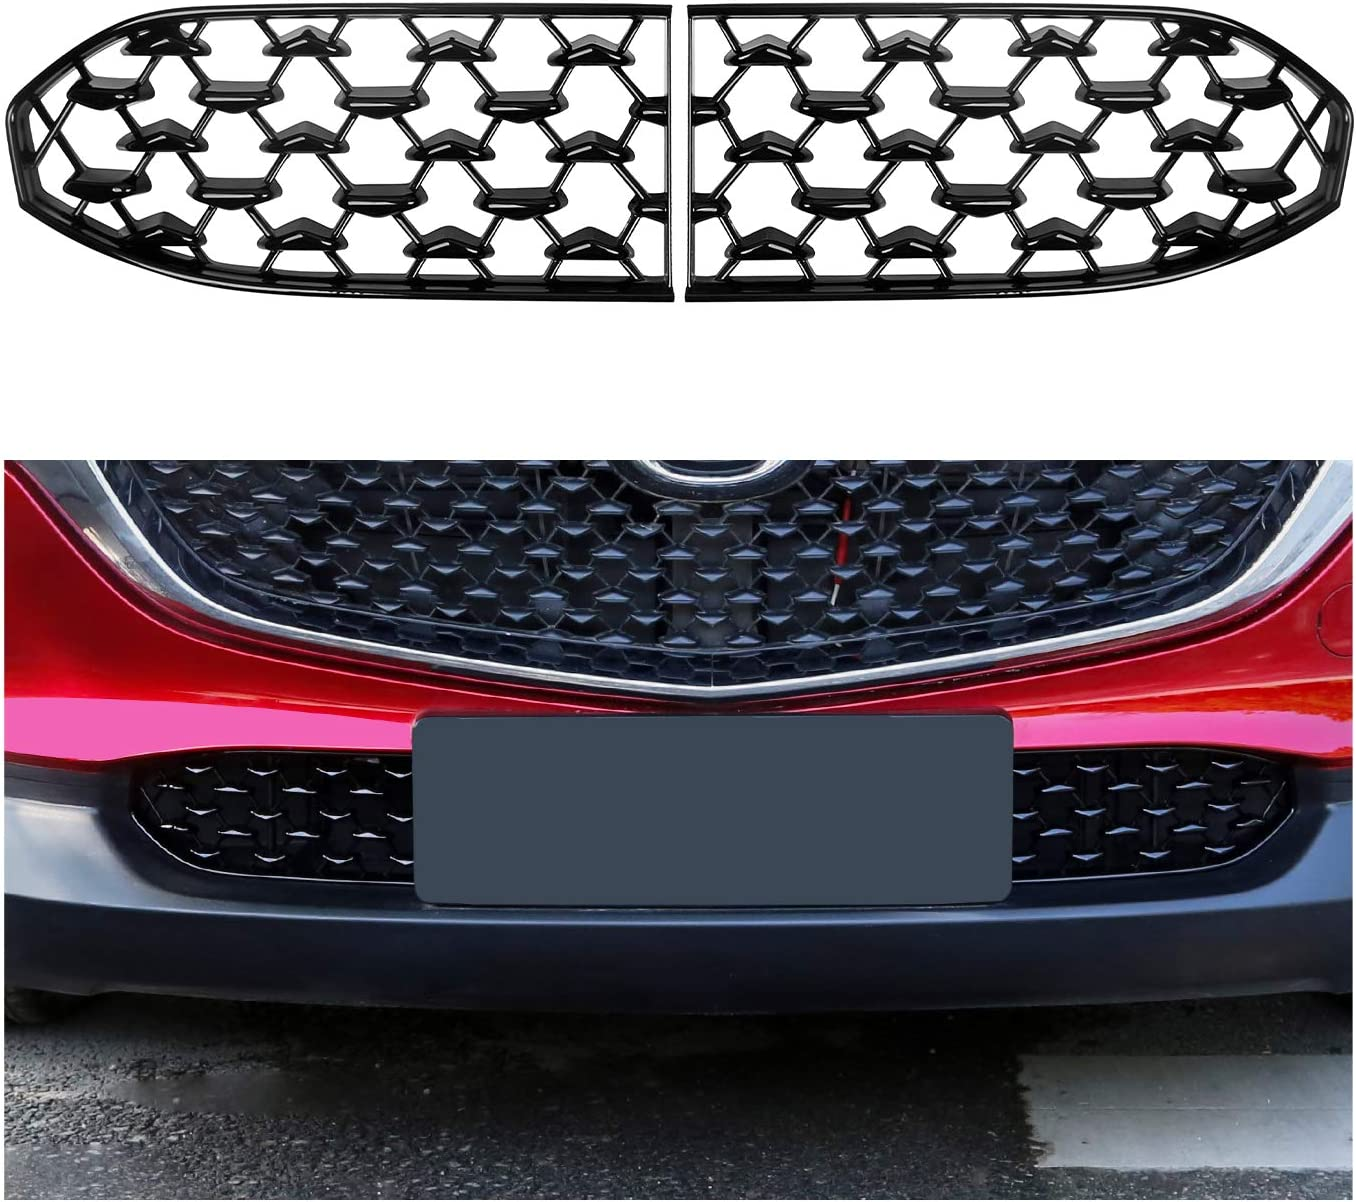 CDEFG CX30 Front Grill Mesh Guard Inserts Grille Trims for Large special price Rapid rise